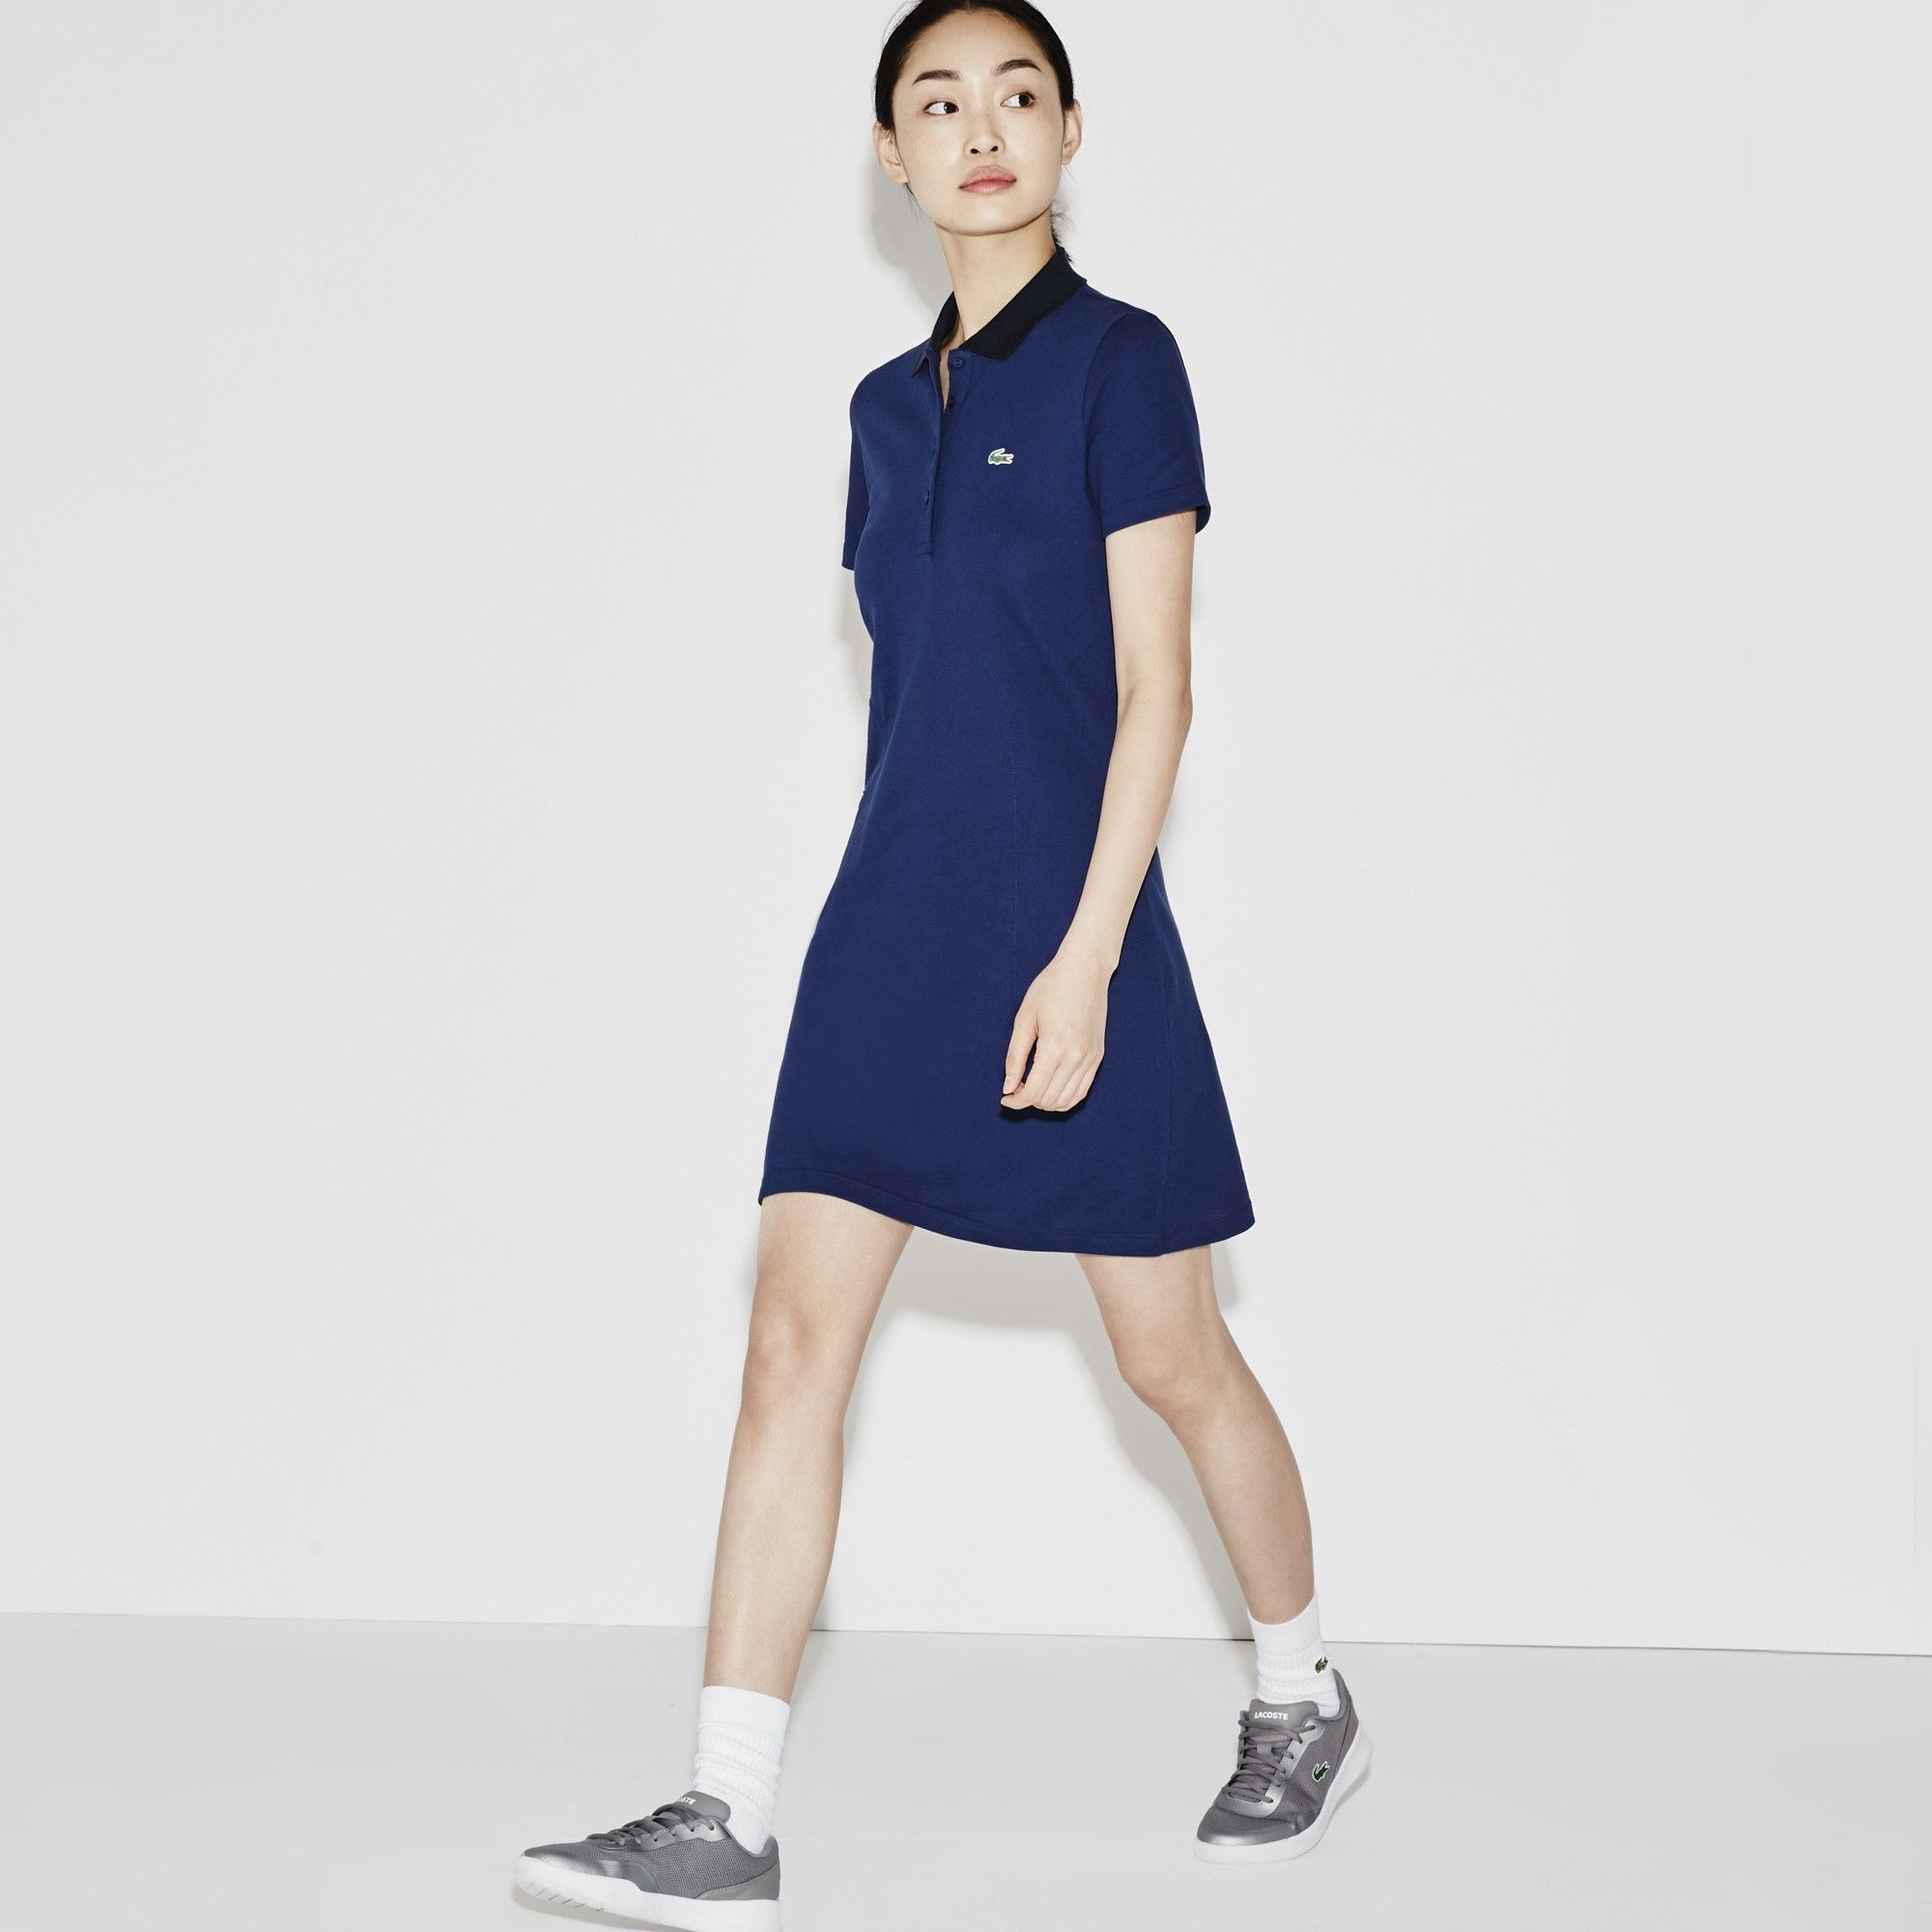 d509473251 LACOSTE Women s SPORT Golf Stretch Mini Piqué Polo Dress - ocean navy blue.   lacoste  cloth